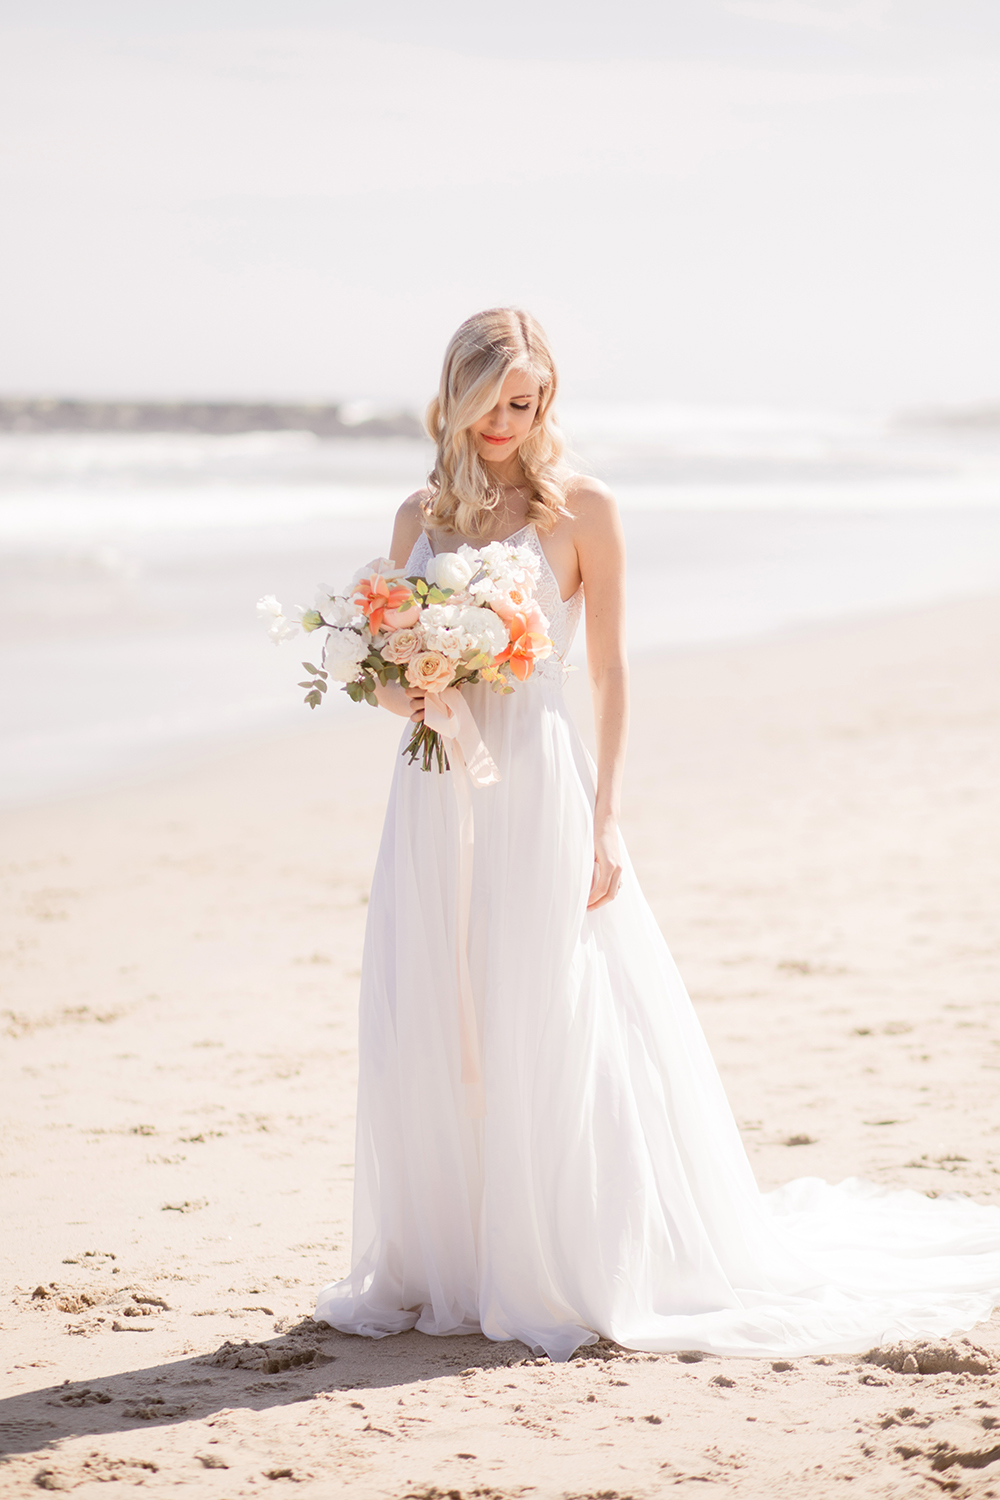 Romantic Imagery - Vibrant, bright and joyous wedding photography. Hope Helmuth specializes in timeless fine art imagery. We take great pride in capturing the best day of your life.Let your personality shine. We are here to capture it.